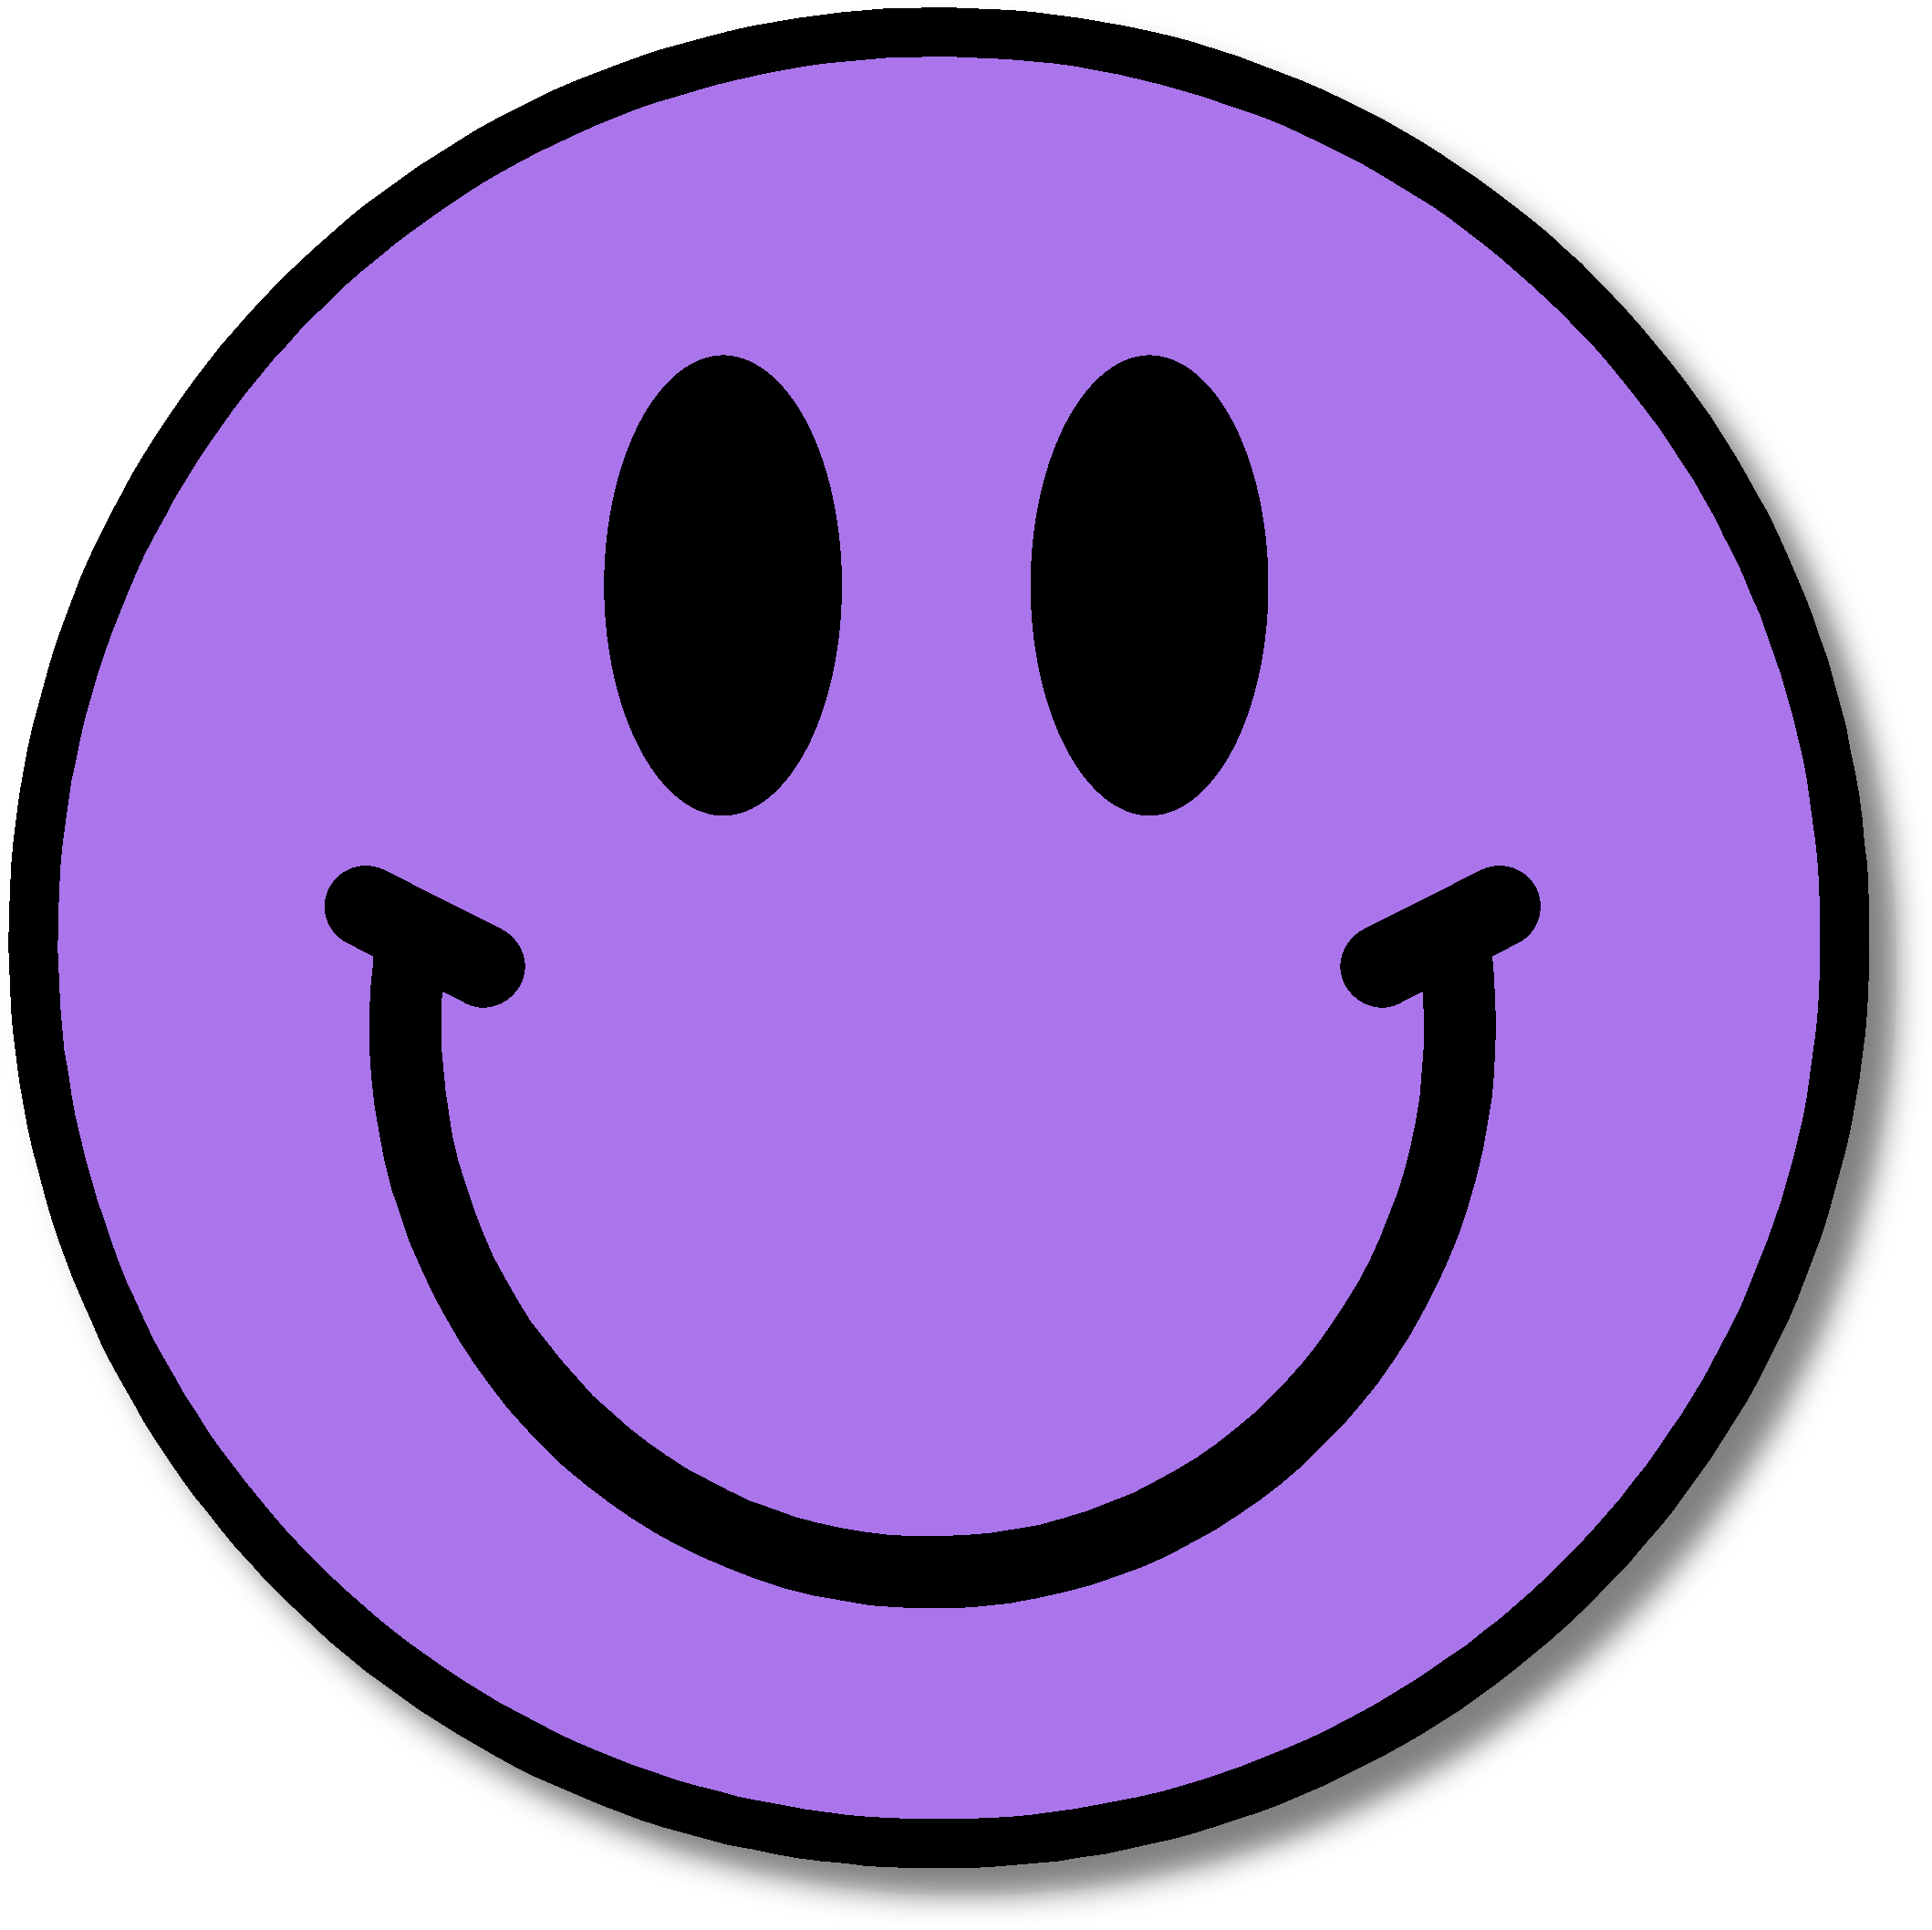 Free Smiley Face Cliparts, Download Free Clip Art, Free Clip.